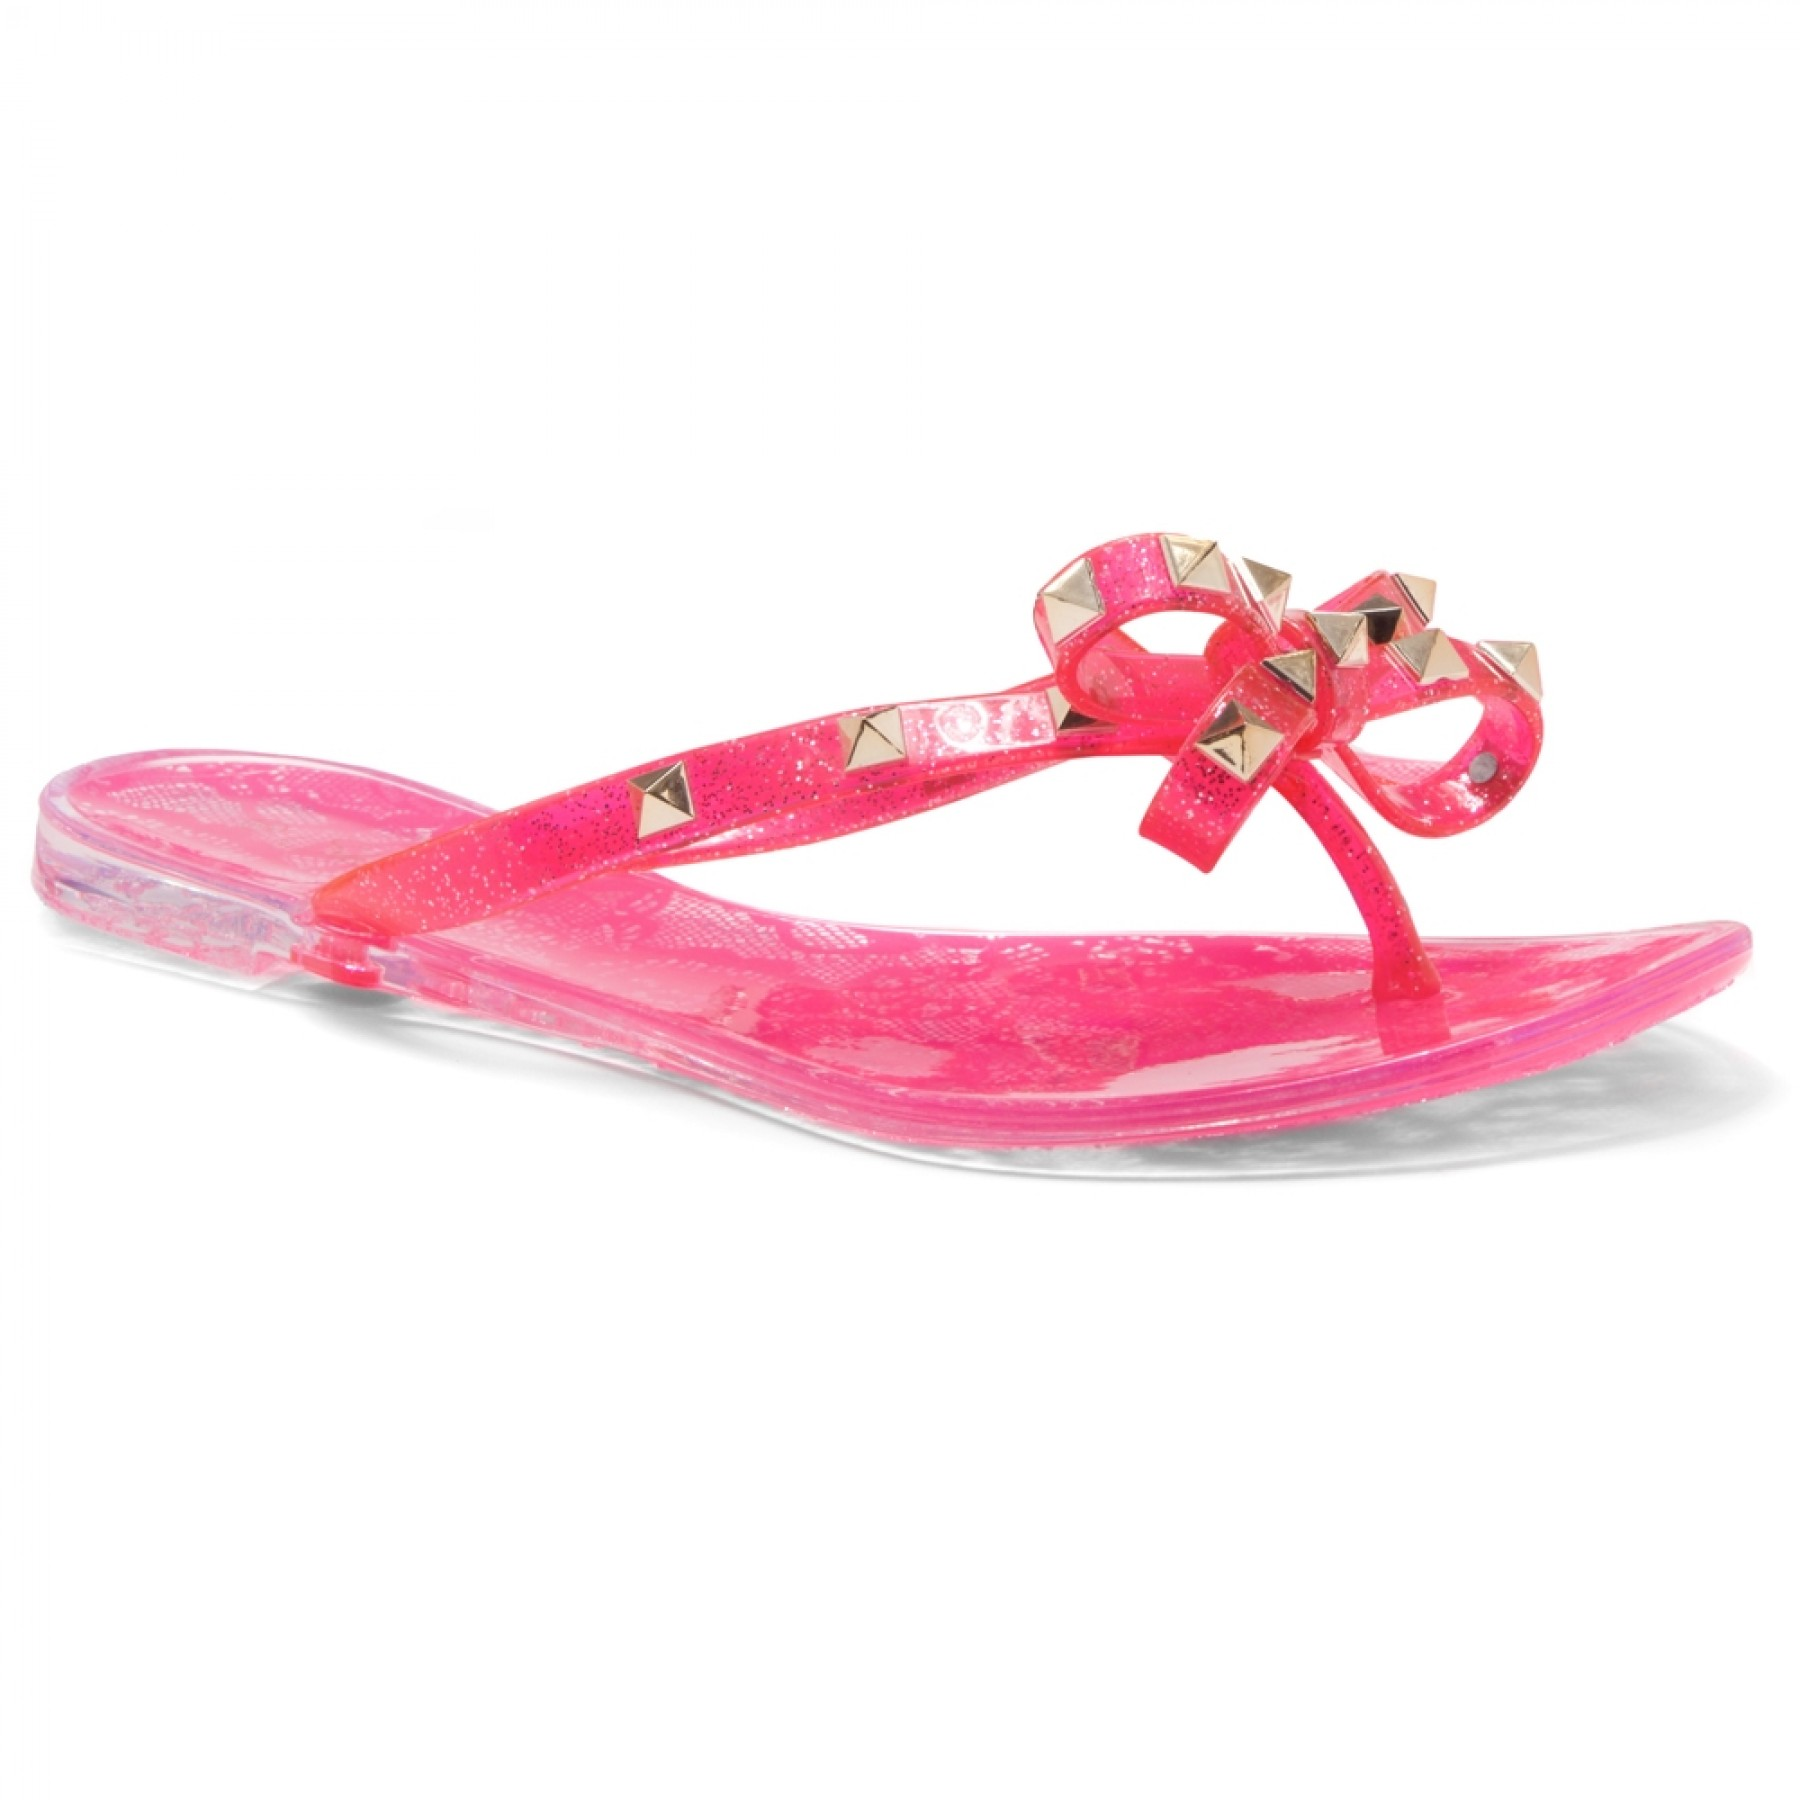 Shoe Land SUMMER-Women's Flip Flops Jelly Sandals With Studs Accents(1896/Pink)